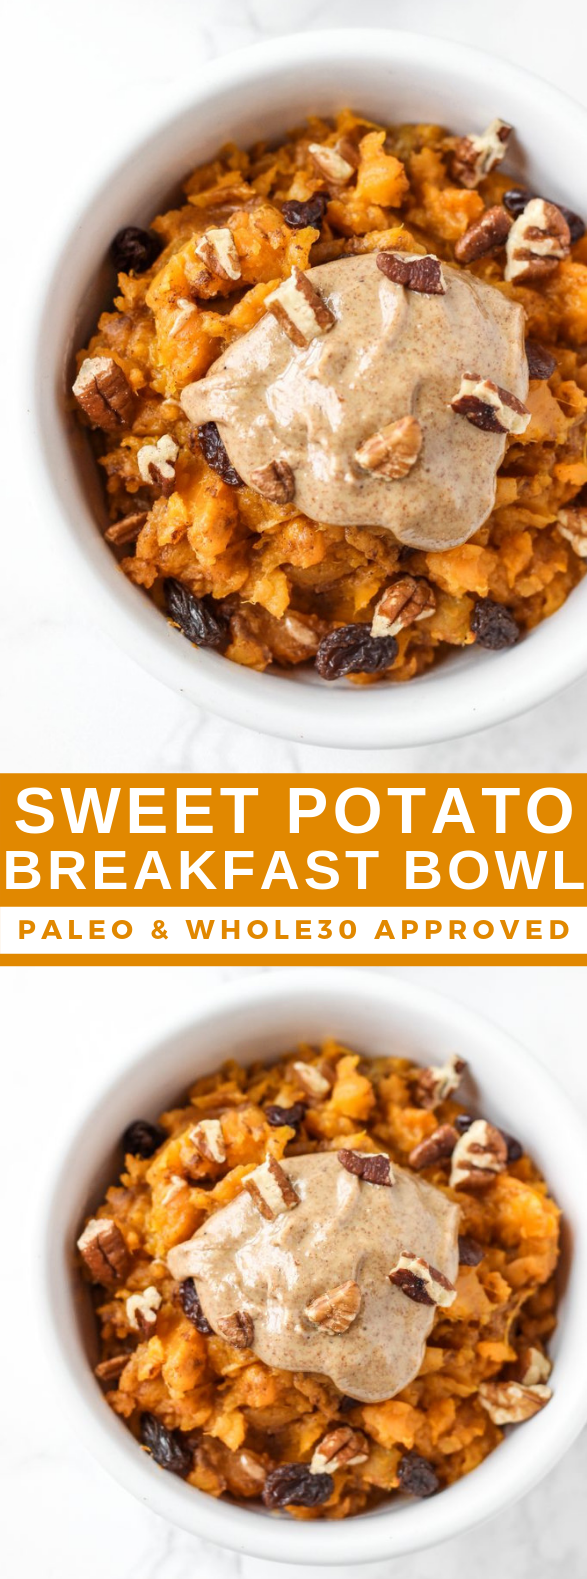 SWEET POTATO BREAKFAST BOWL #healthyrecipes #casserole